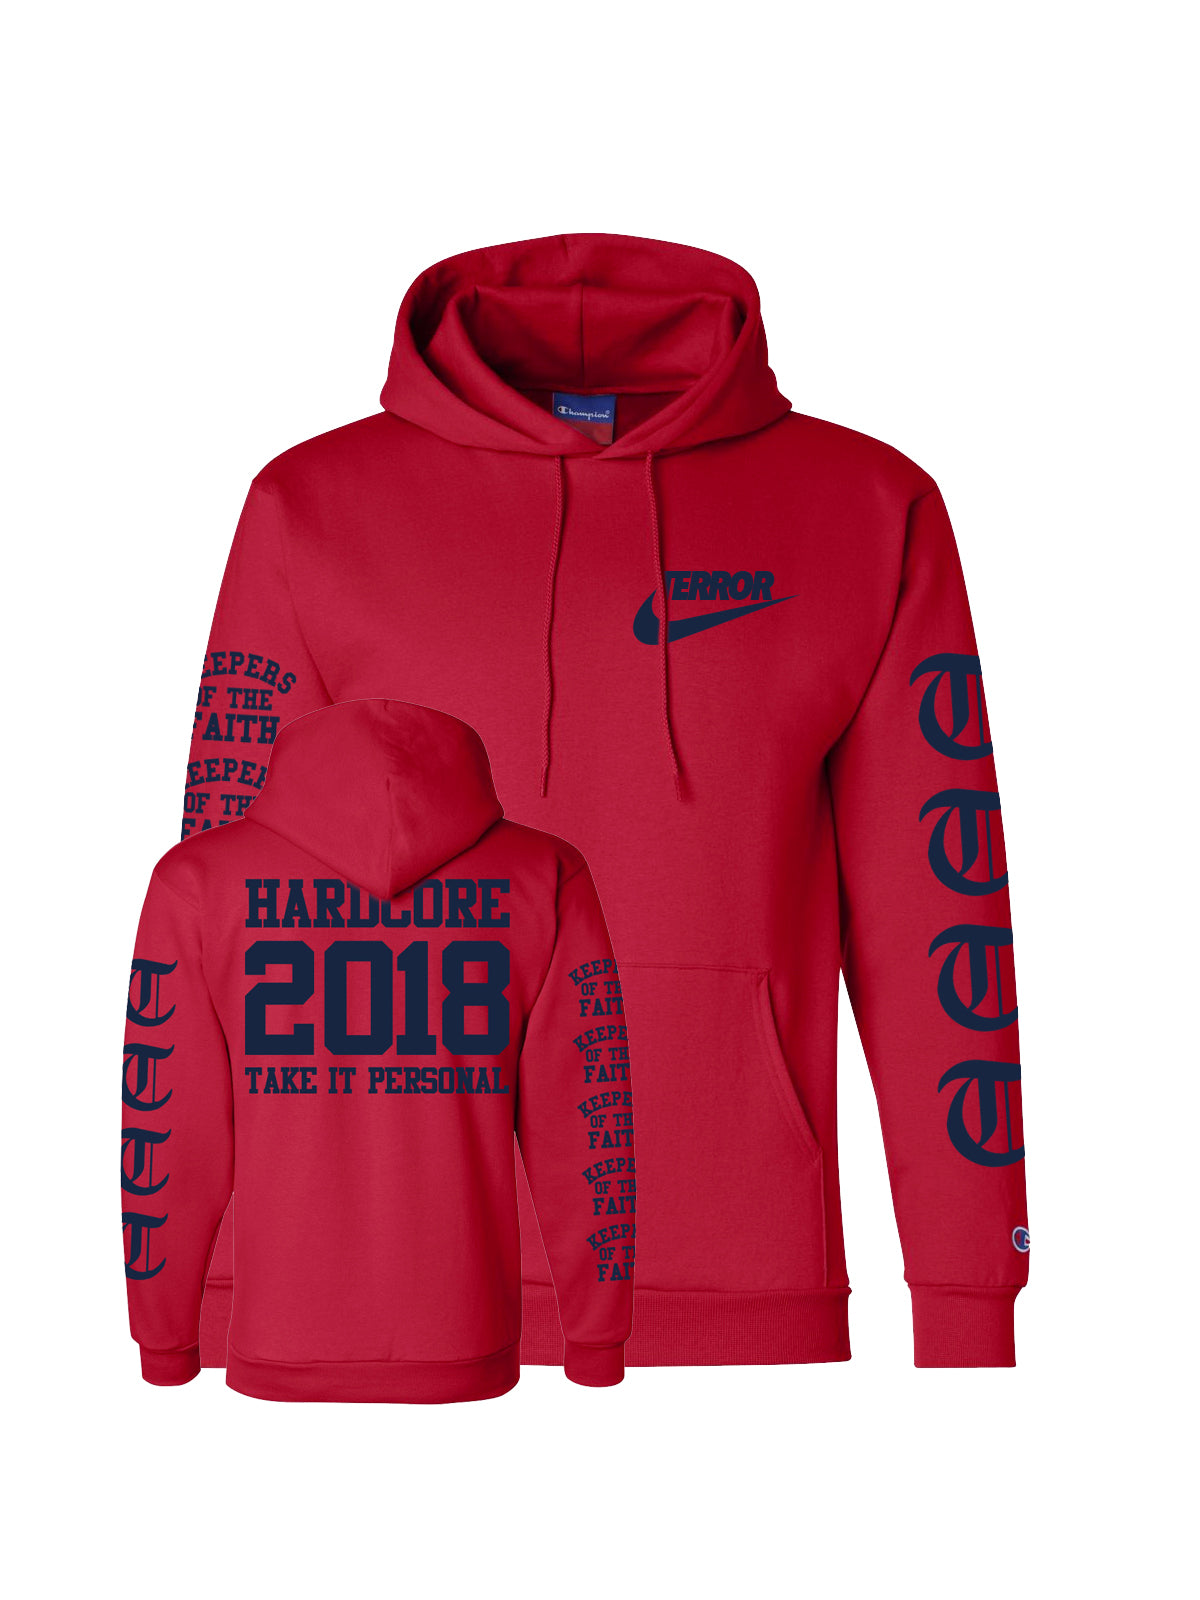 It Champion Hoodie Personal Take It Take Personal Y9WEH2ID